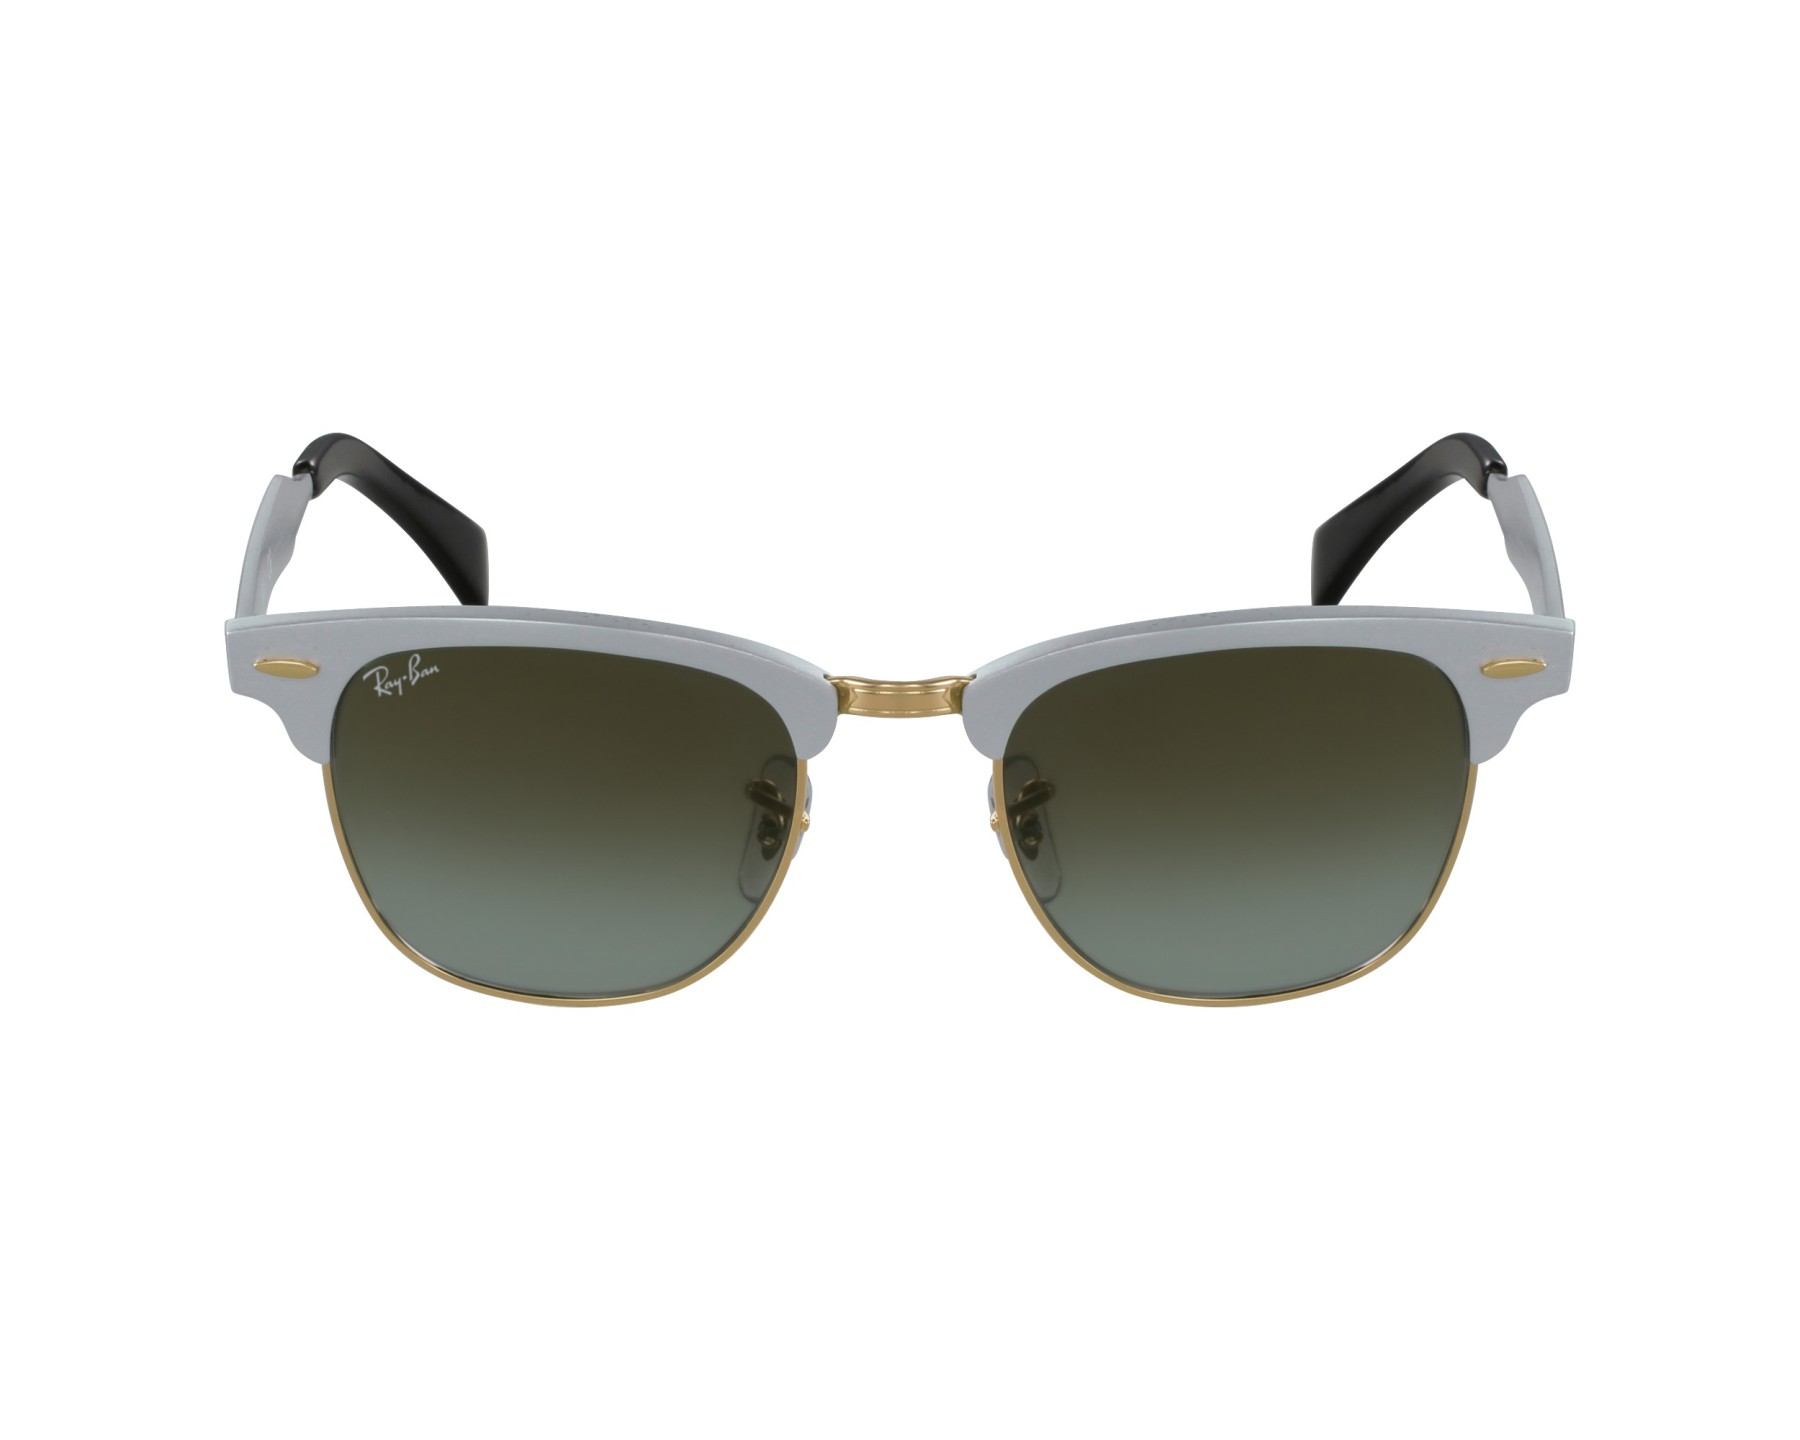 a8aa7ffd6365b Sunglasses Ray-Ban RB-3507 137 9J 49-21 Silver Gold profile